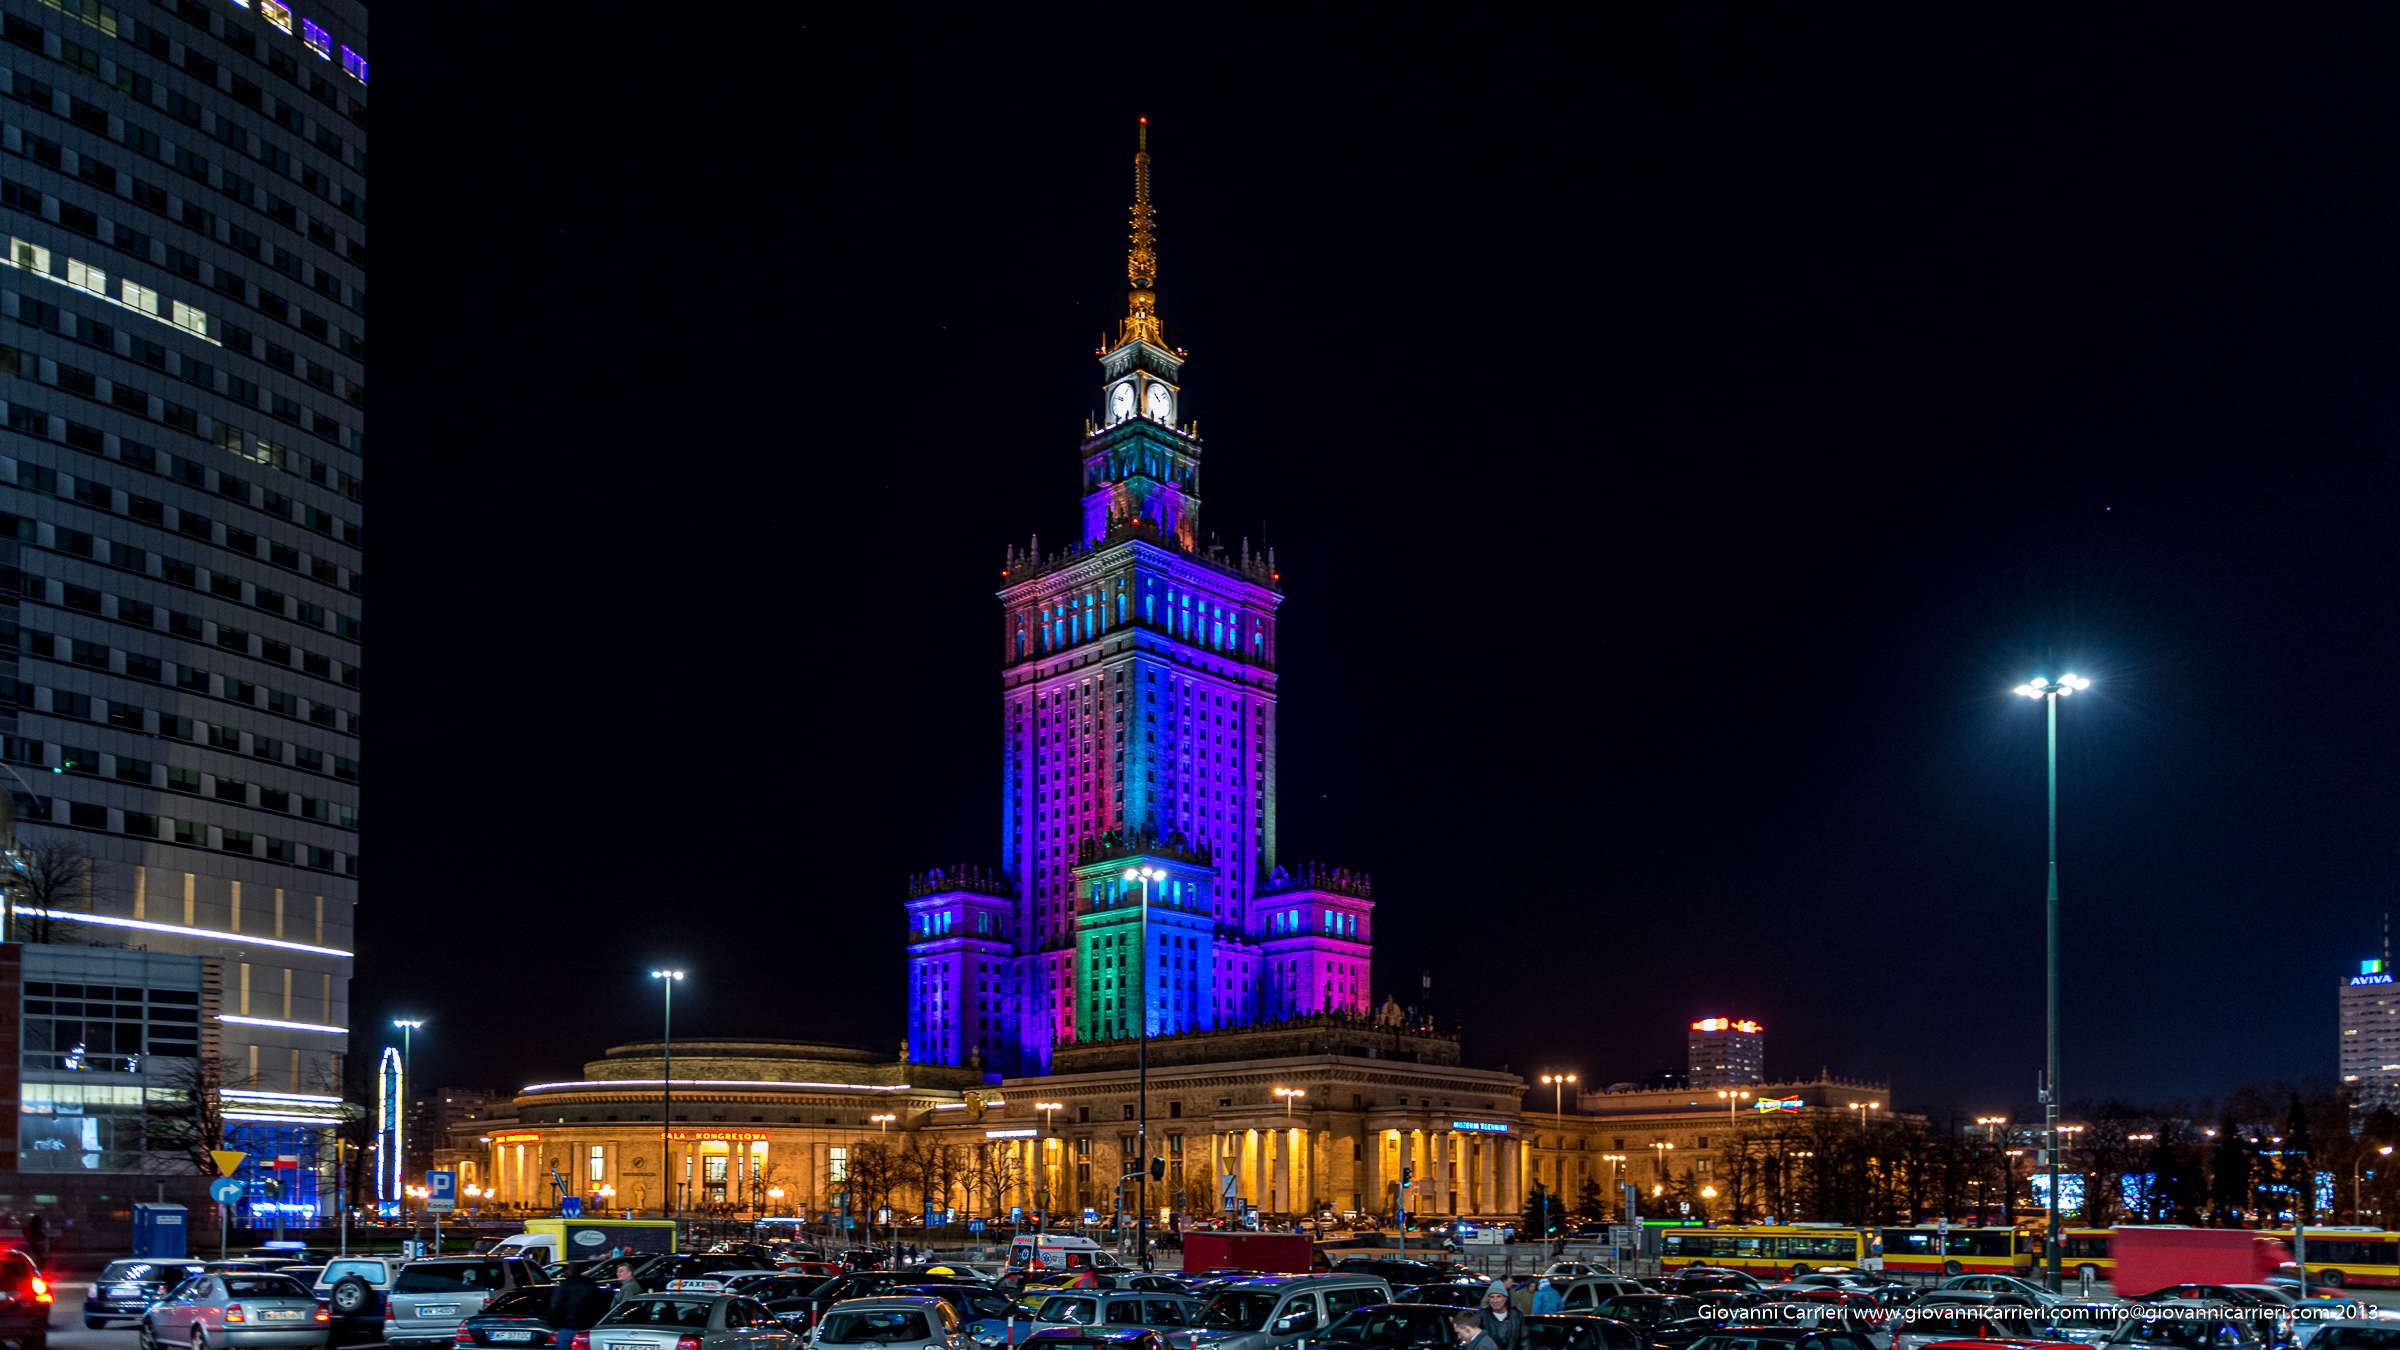 The Palace of Culture and Science, seen at night - Joseph Stalin